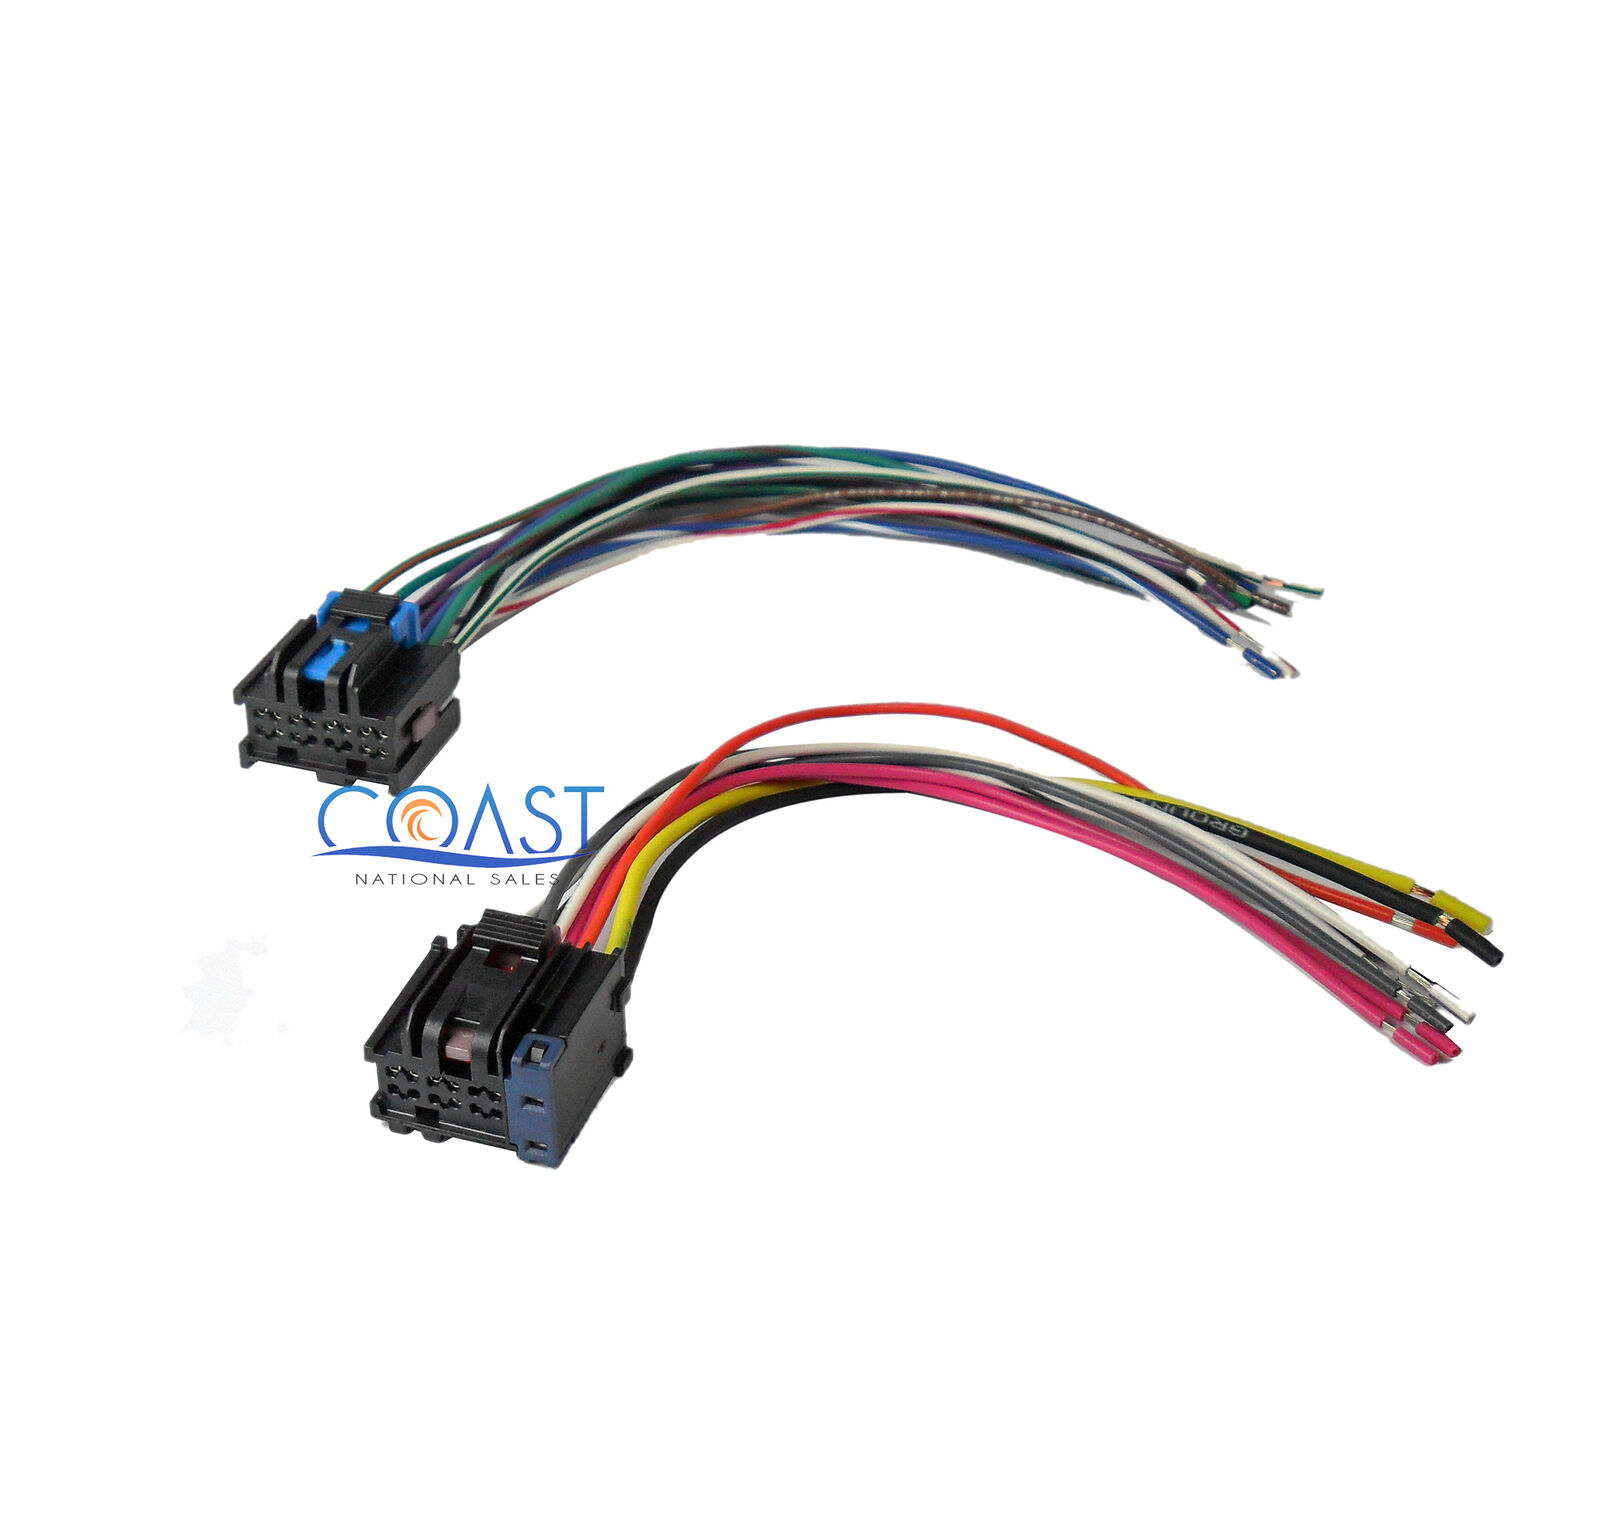 Car Stereo Wiring Harness To Factory Radio For 2005 2010 Chevy Pontiac Saturn 1 Of 1free Shipping